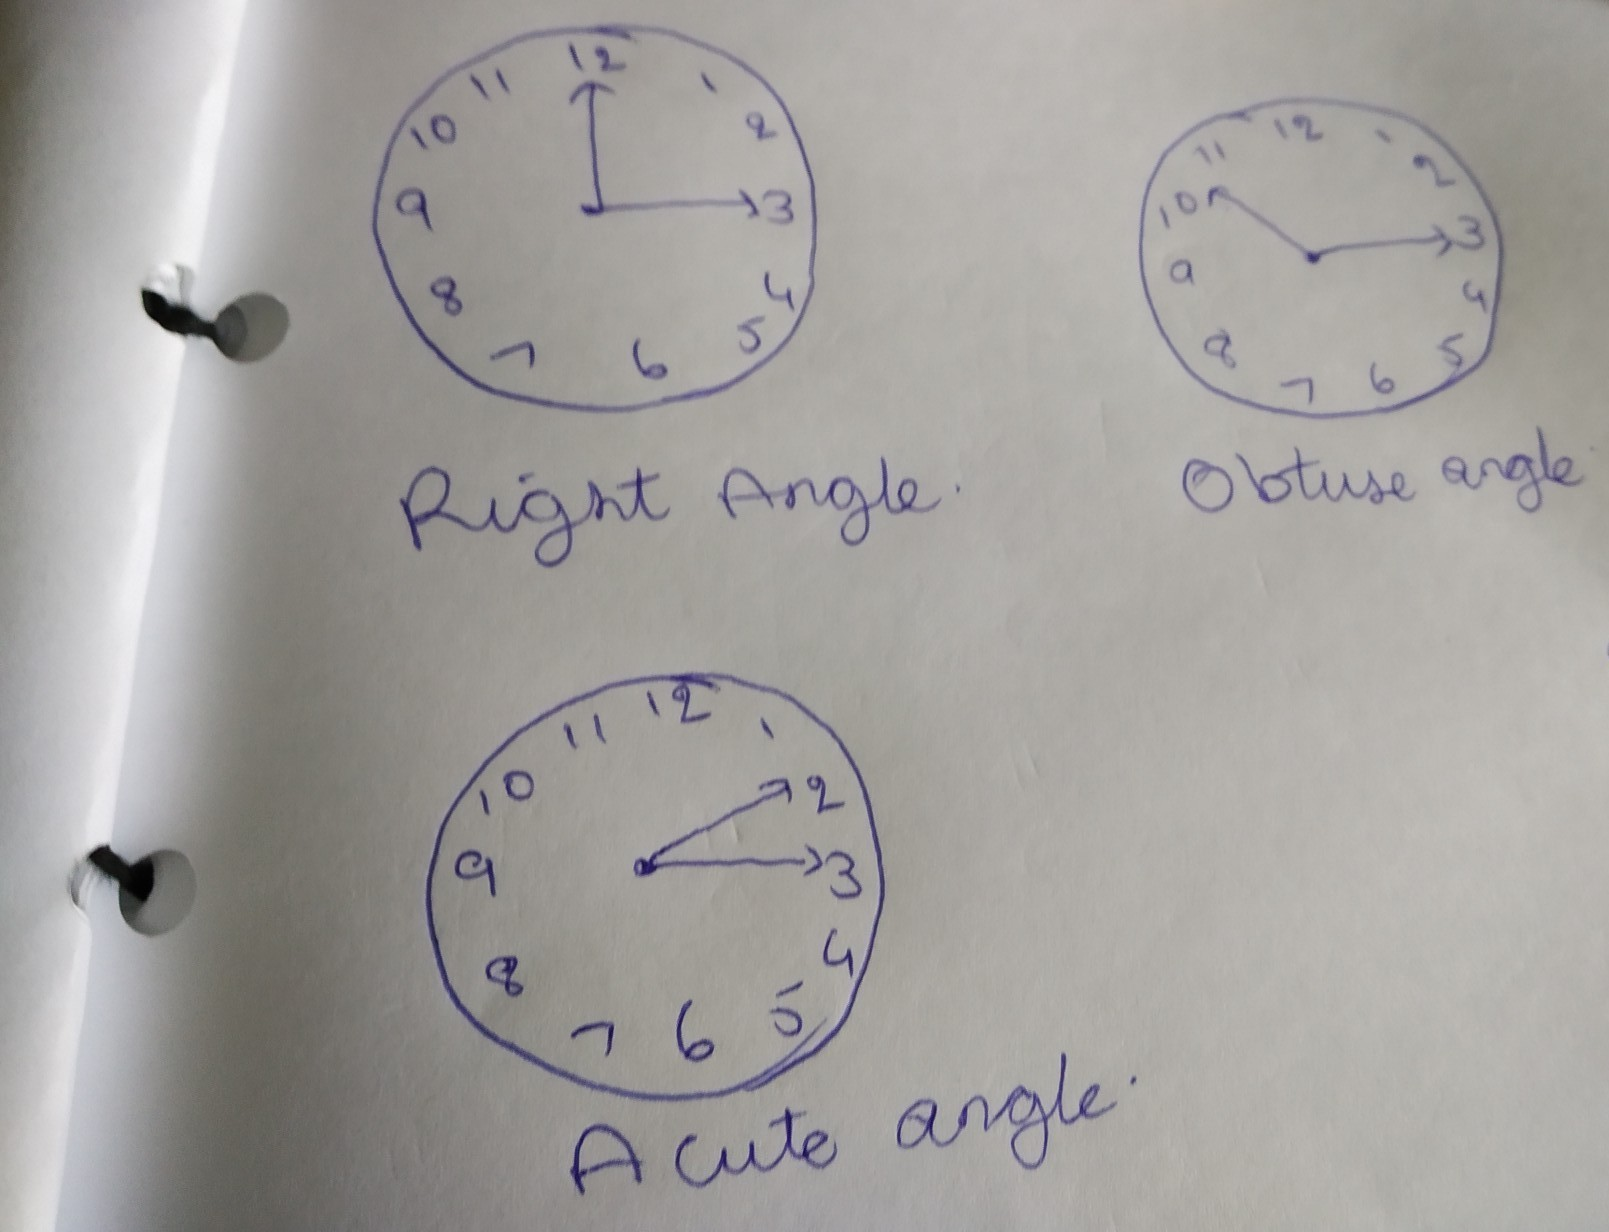 give examples of acute angle,right angle and obtuse angles